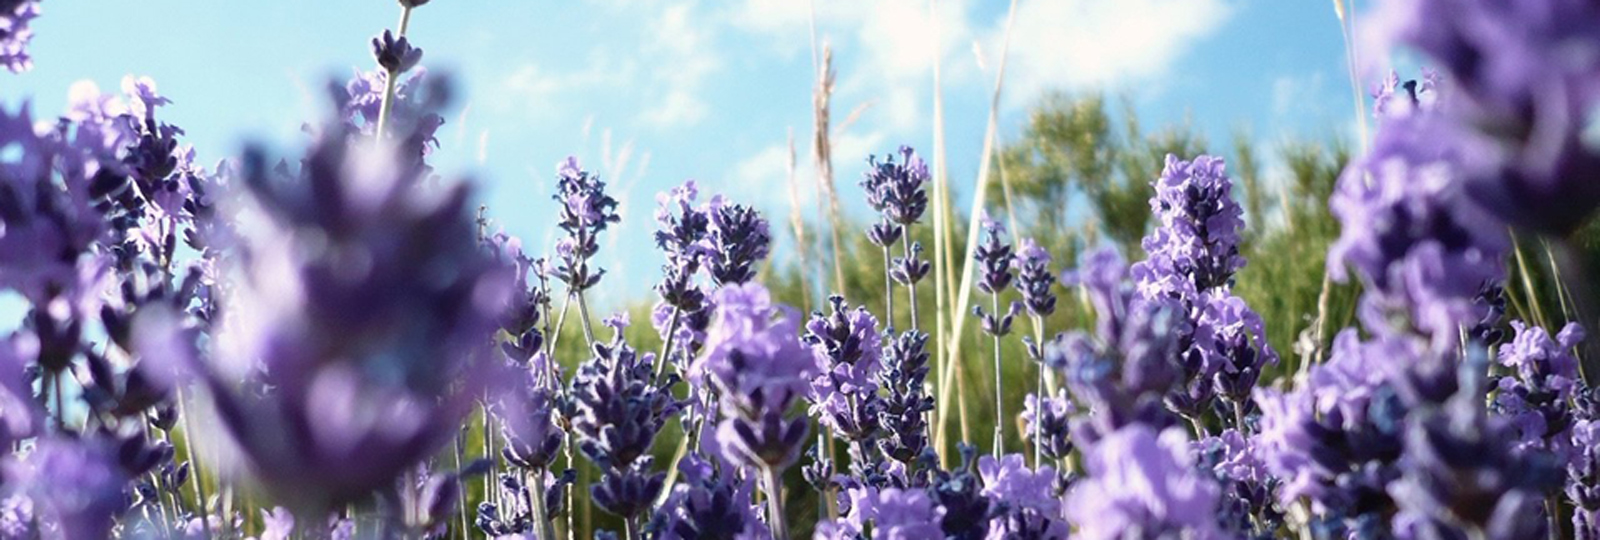 Lavender at Thousand Islands Farms